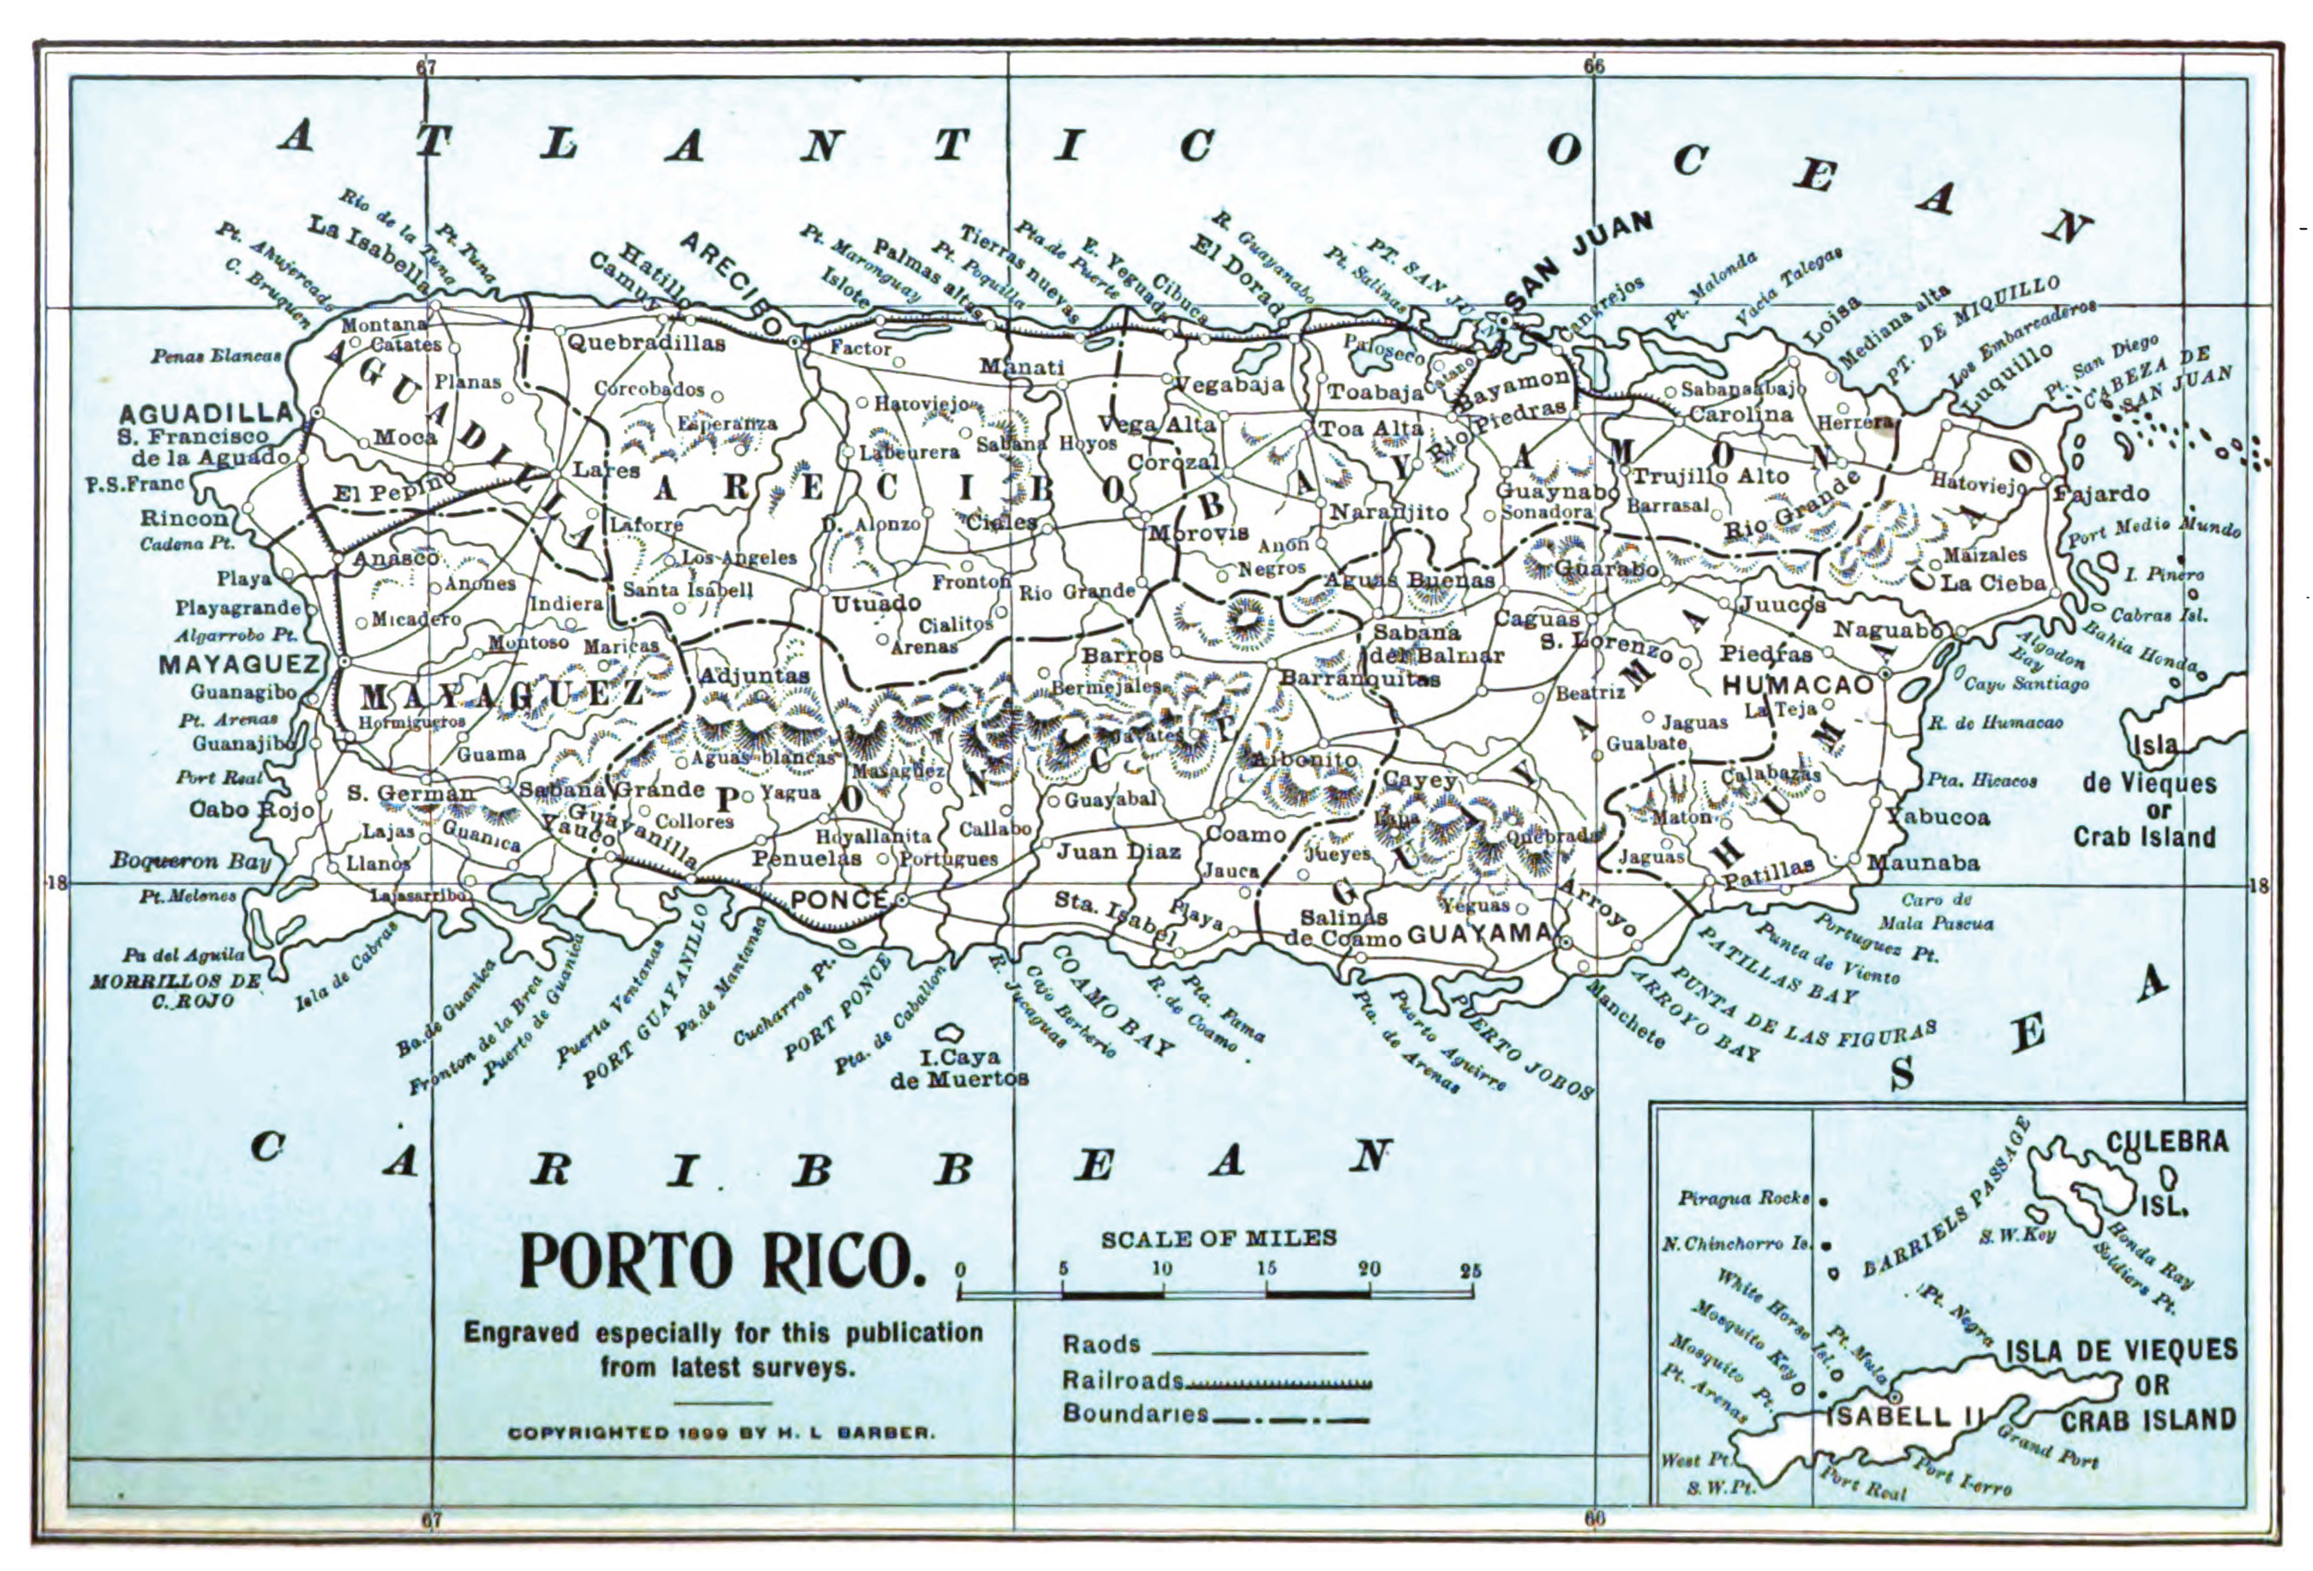 Puerto Rico - Political map of puerto rico